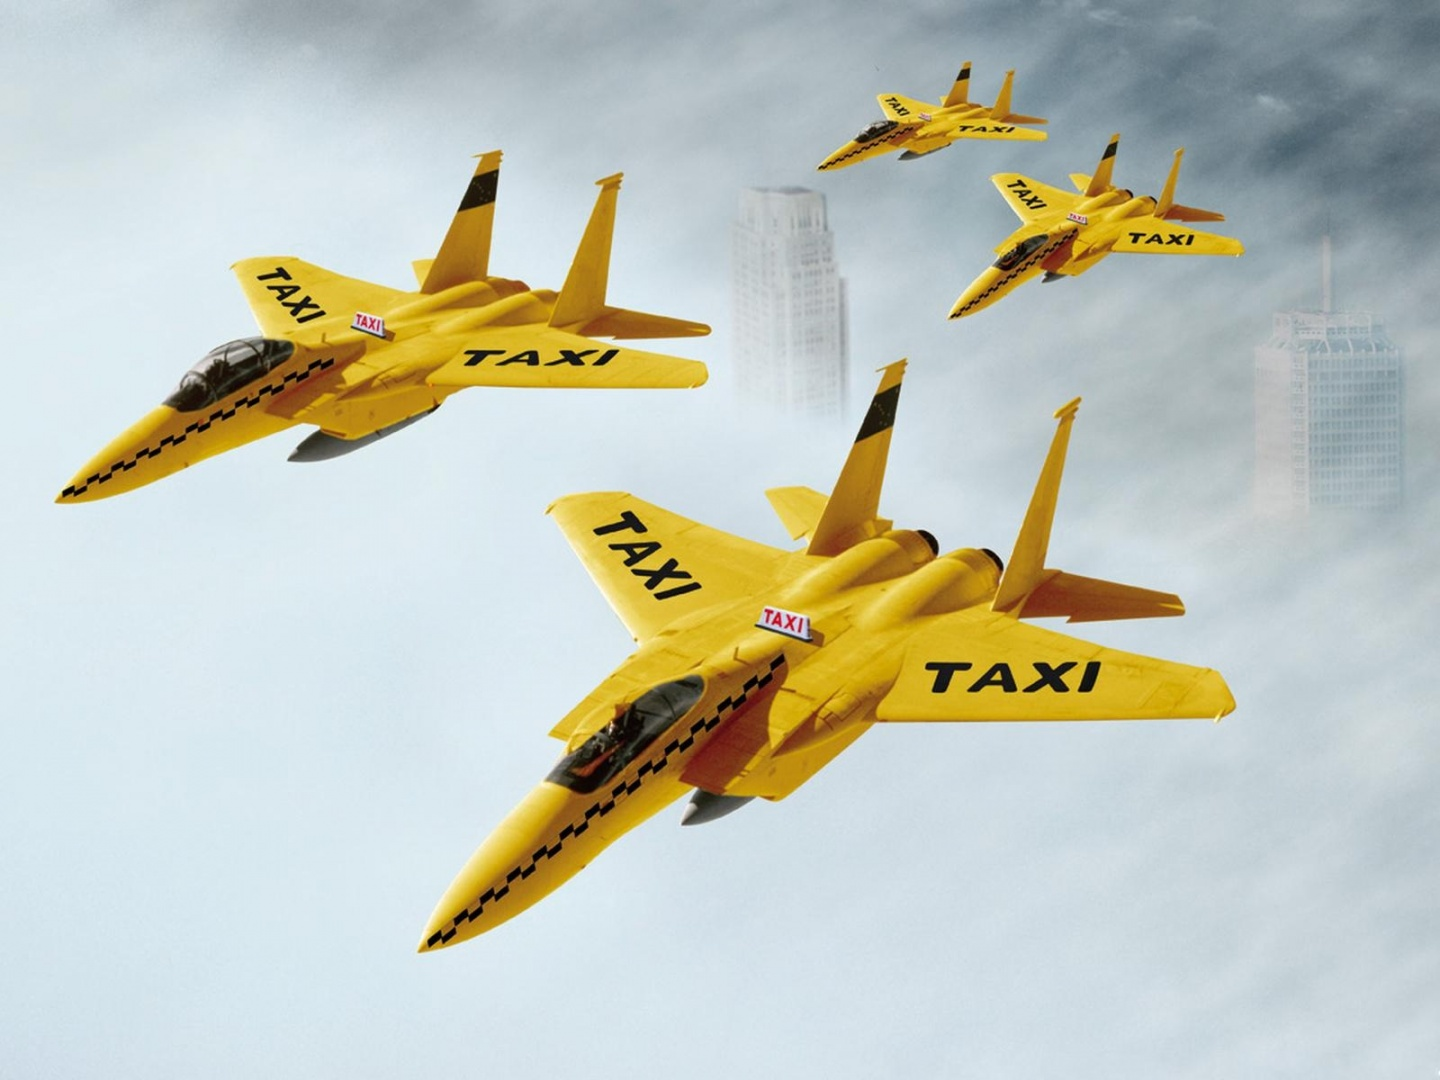 Taxi Jets